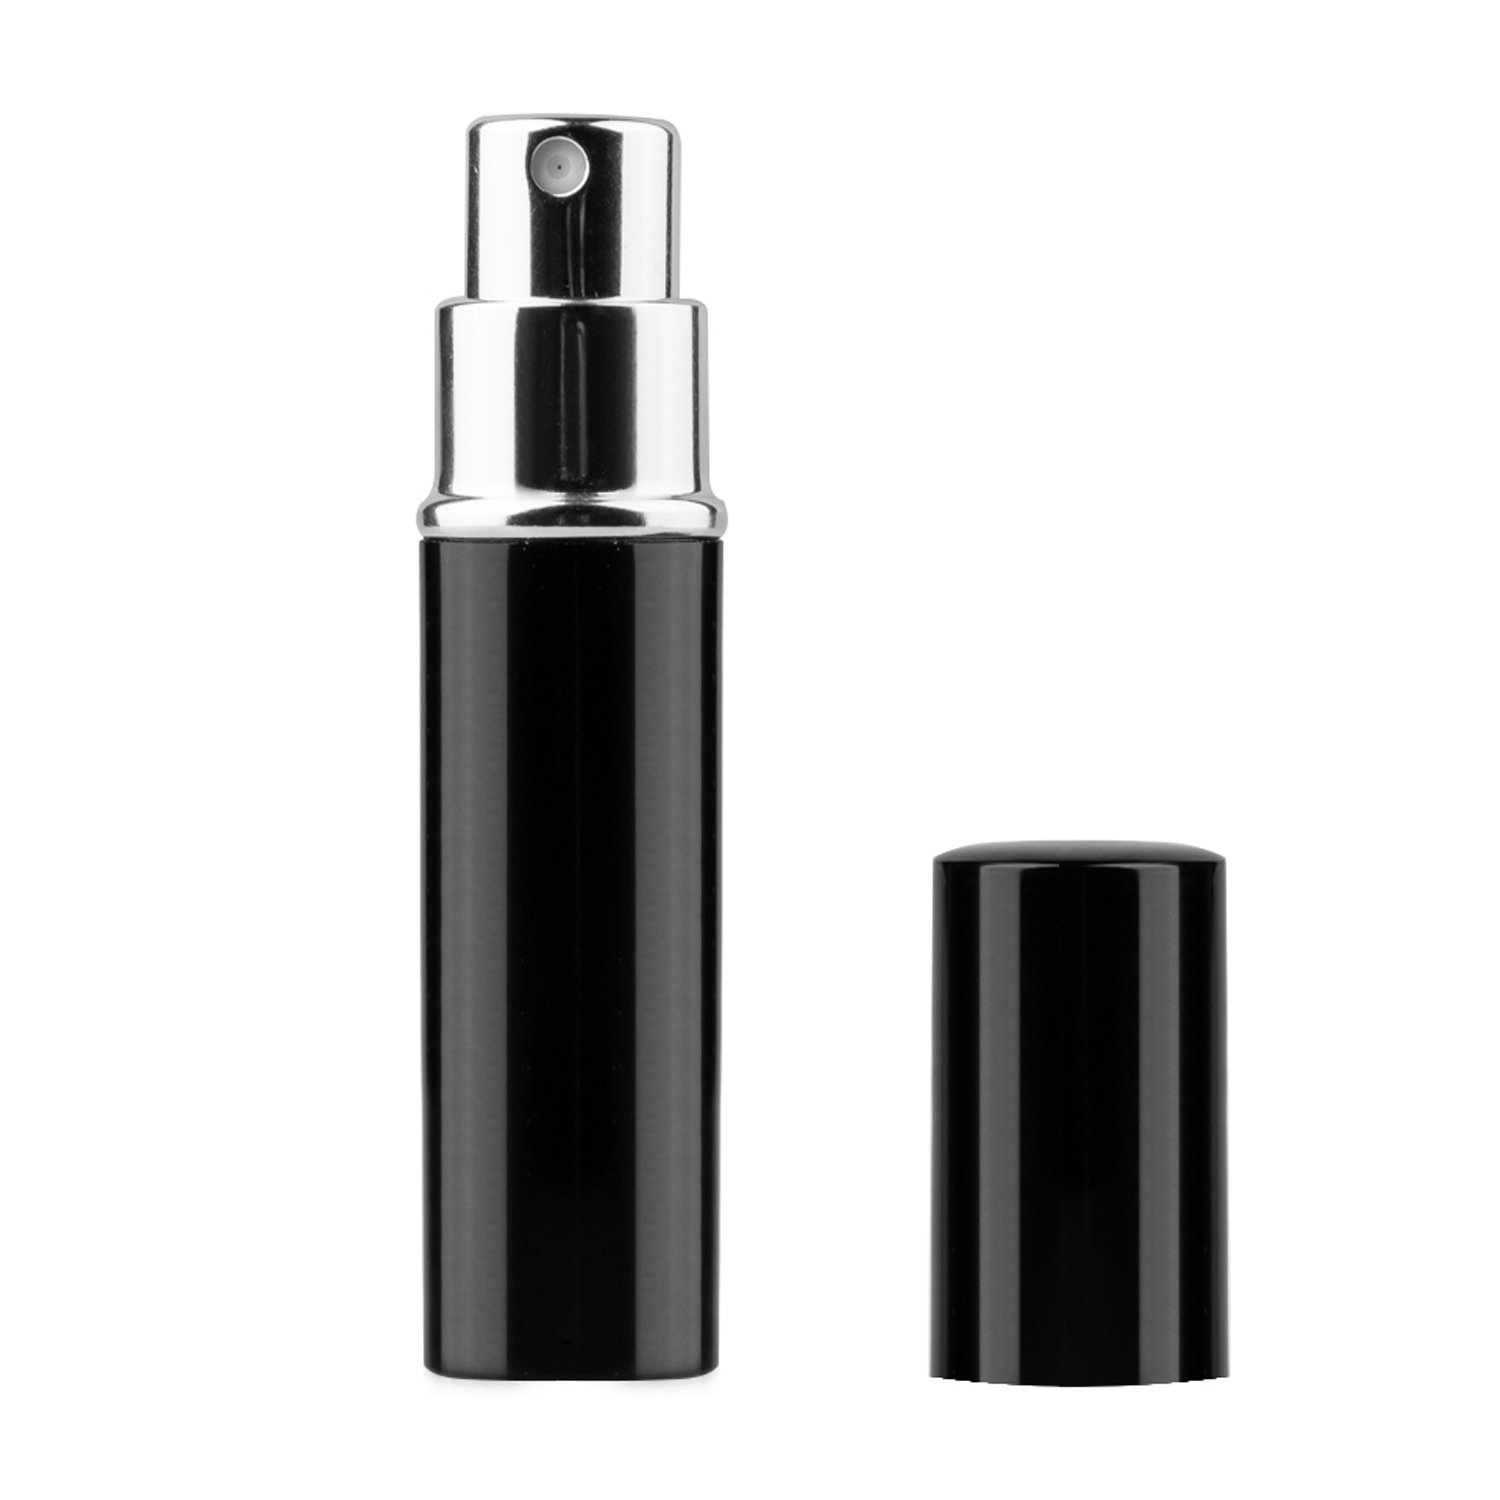 TRIXES 5ml Easy Fill Travel Perfume Aftershave Atomiser Spray Bottle Black PP01